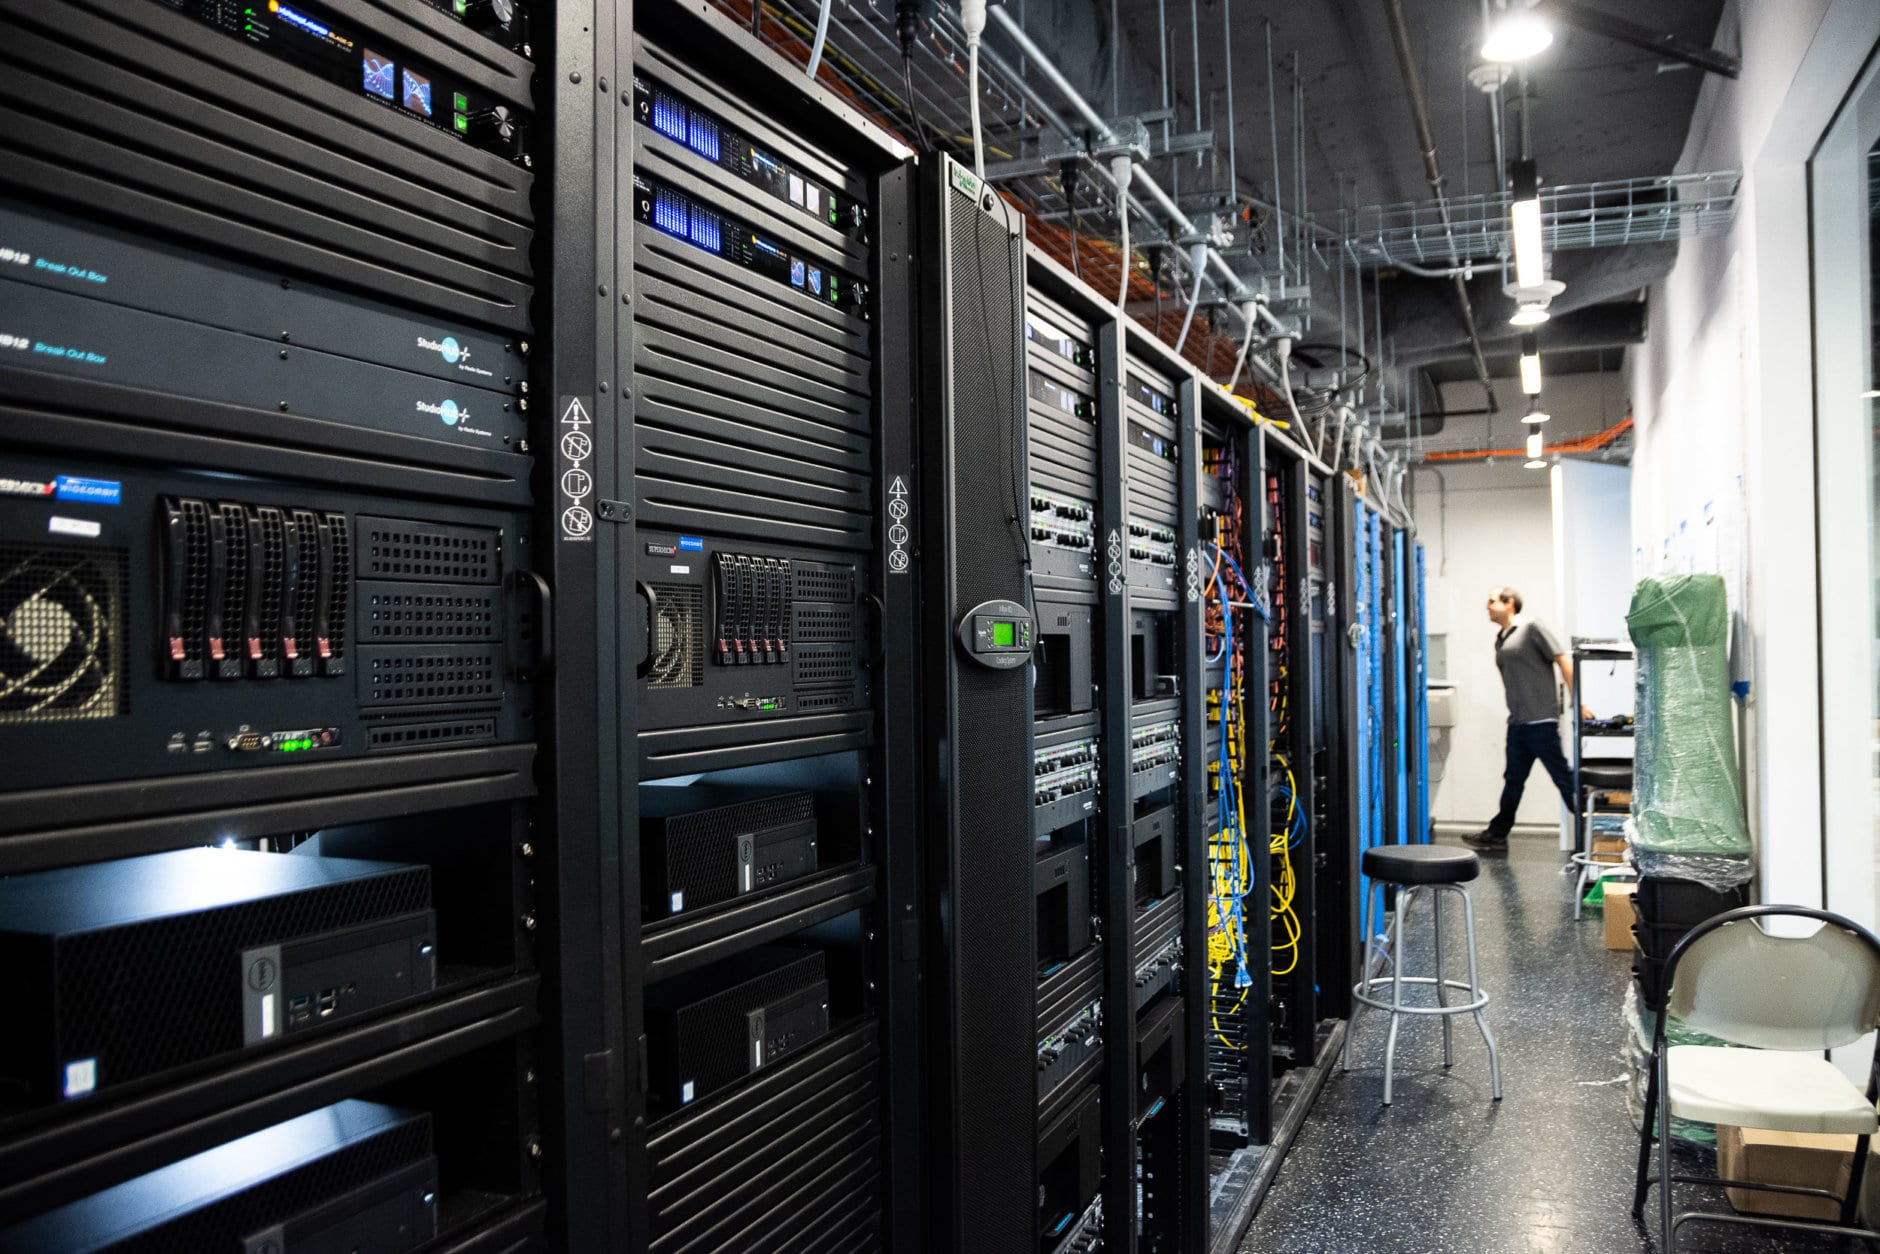 A new building means a new server room. At the Wisconsin Avenue building, even the servers will be housed on the same floor as WTOP and its sister stations. (WTOP/Alejandro Alvarez)